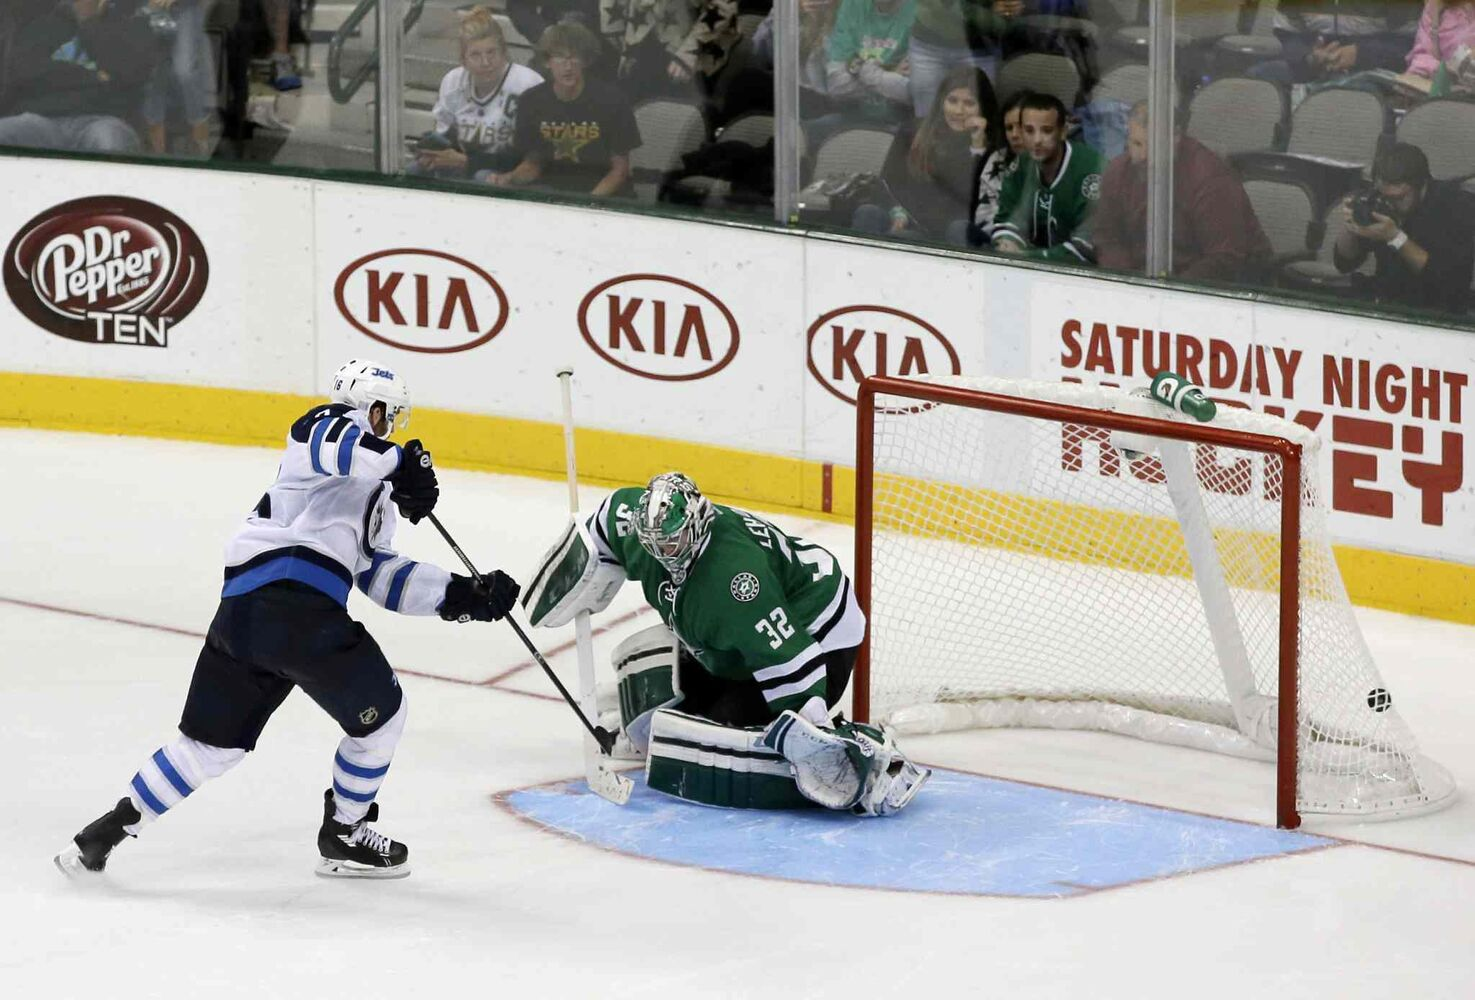 Andrew Ladd scores what would end up being the shootout-winning goal against Kari Lehtonen.